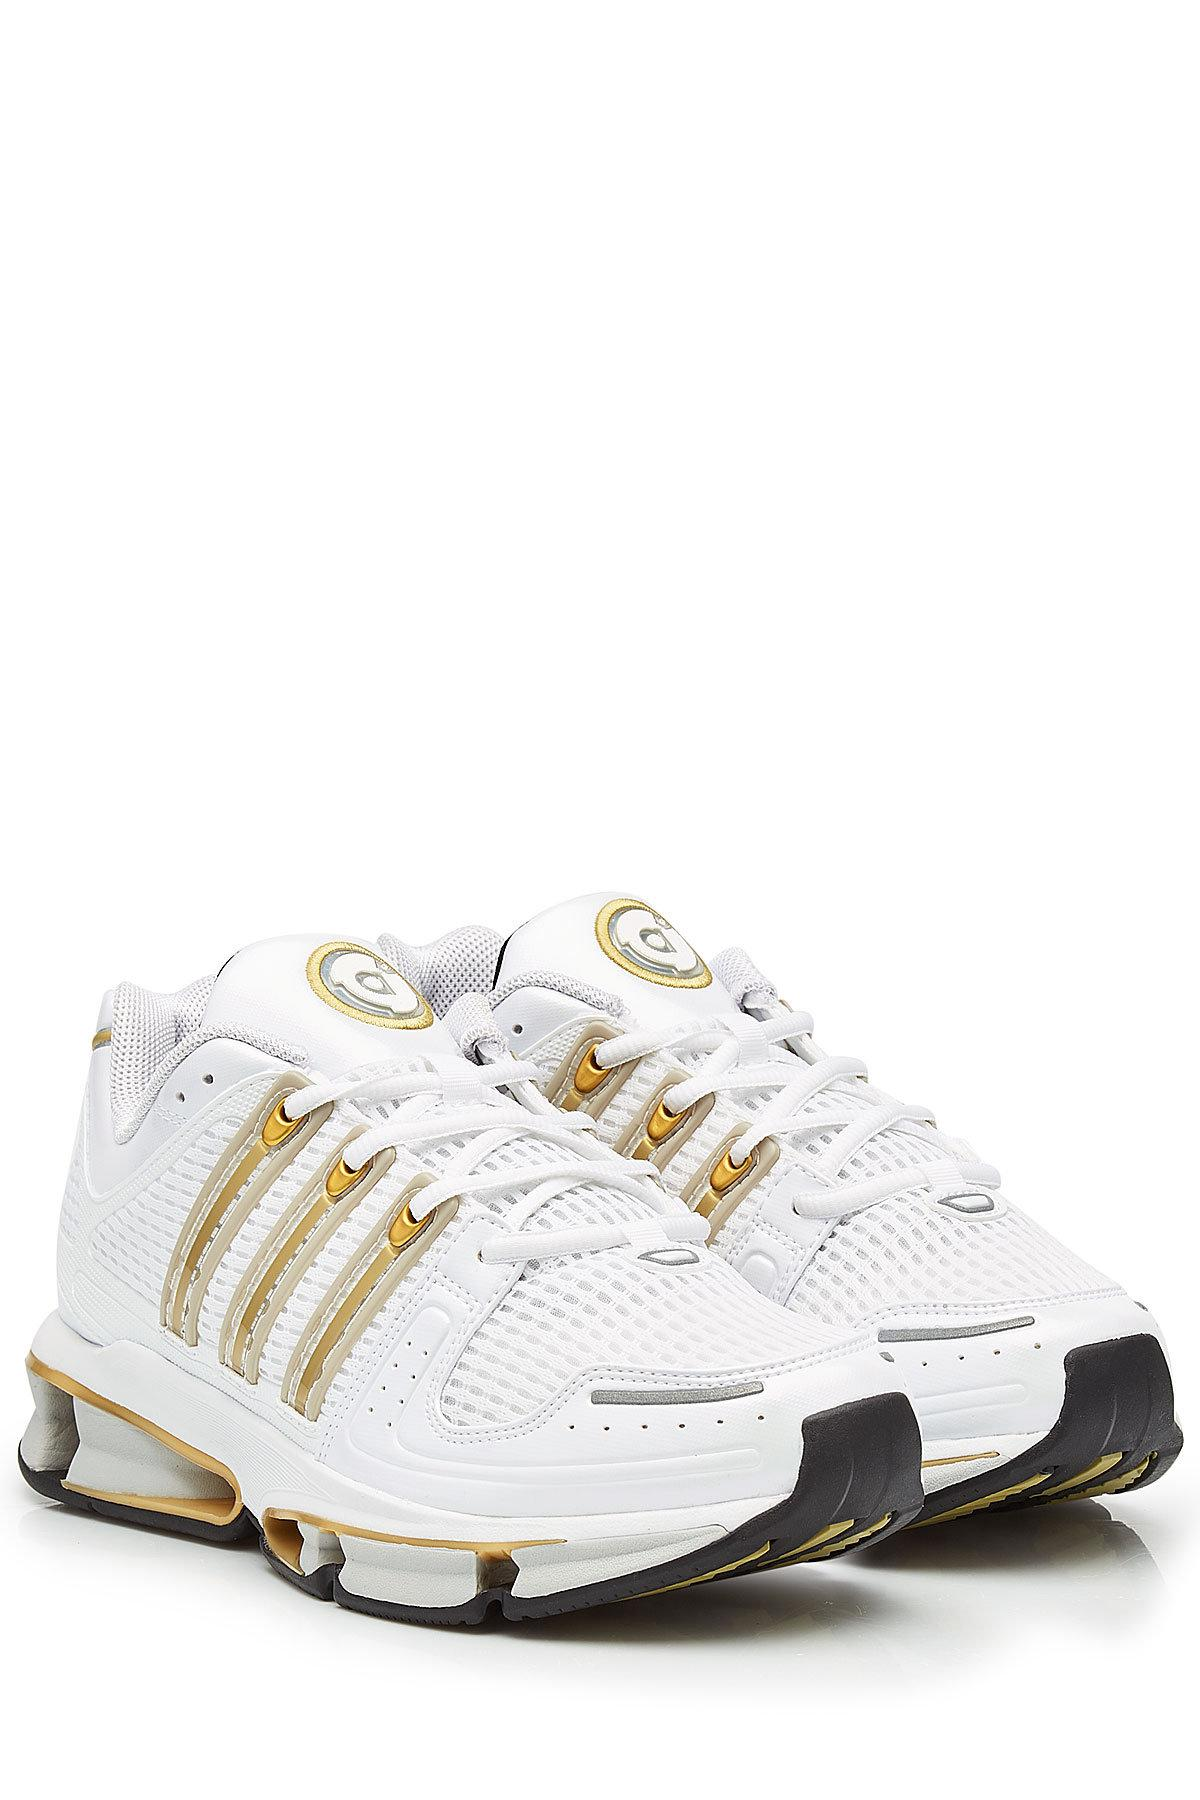 meet eb9bb dda67 Lyst - adidas Originals A3 Twinstrike Sneakers for Men